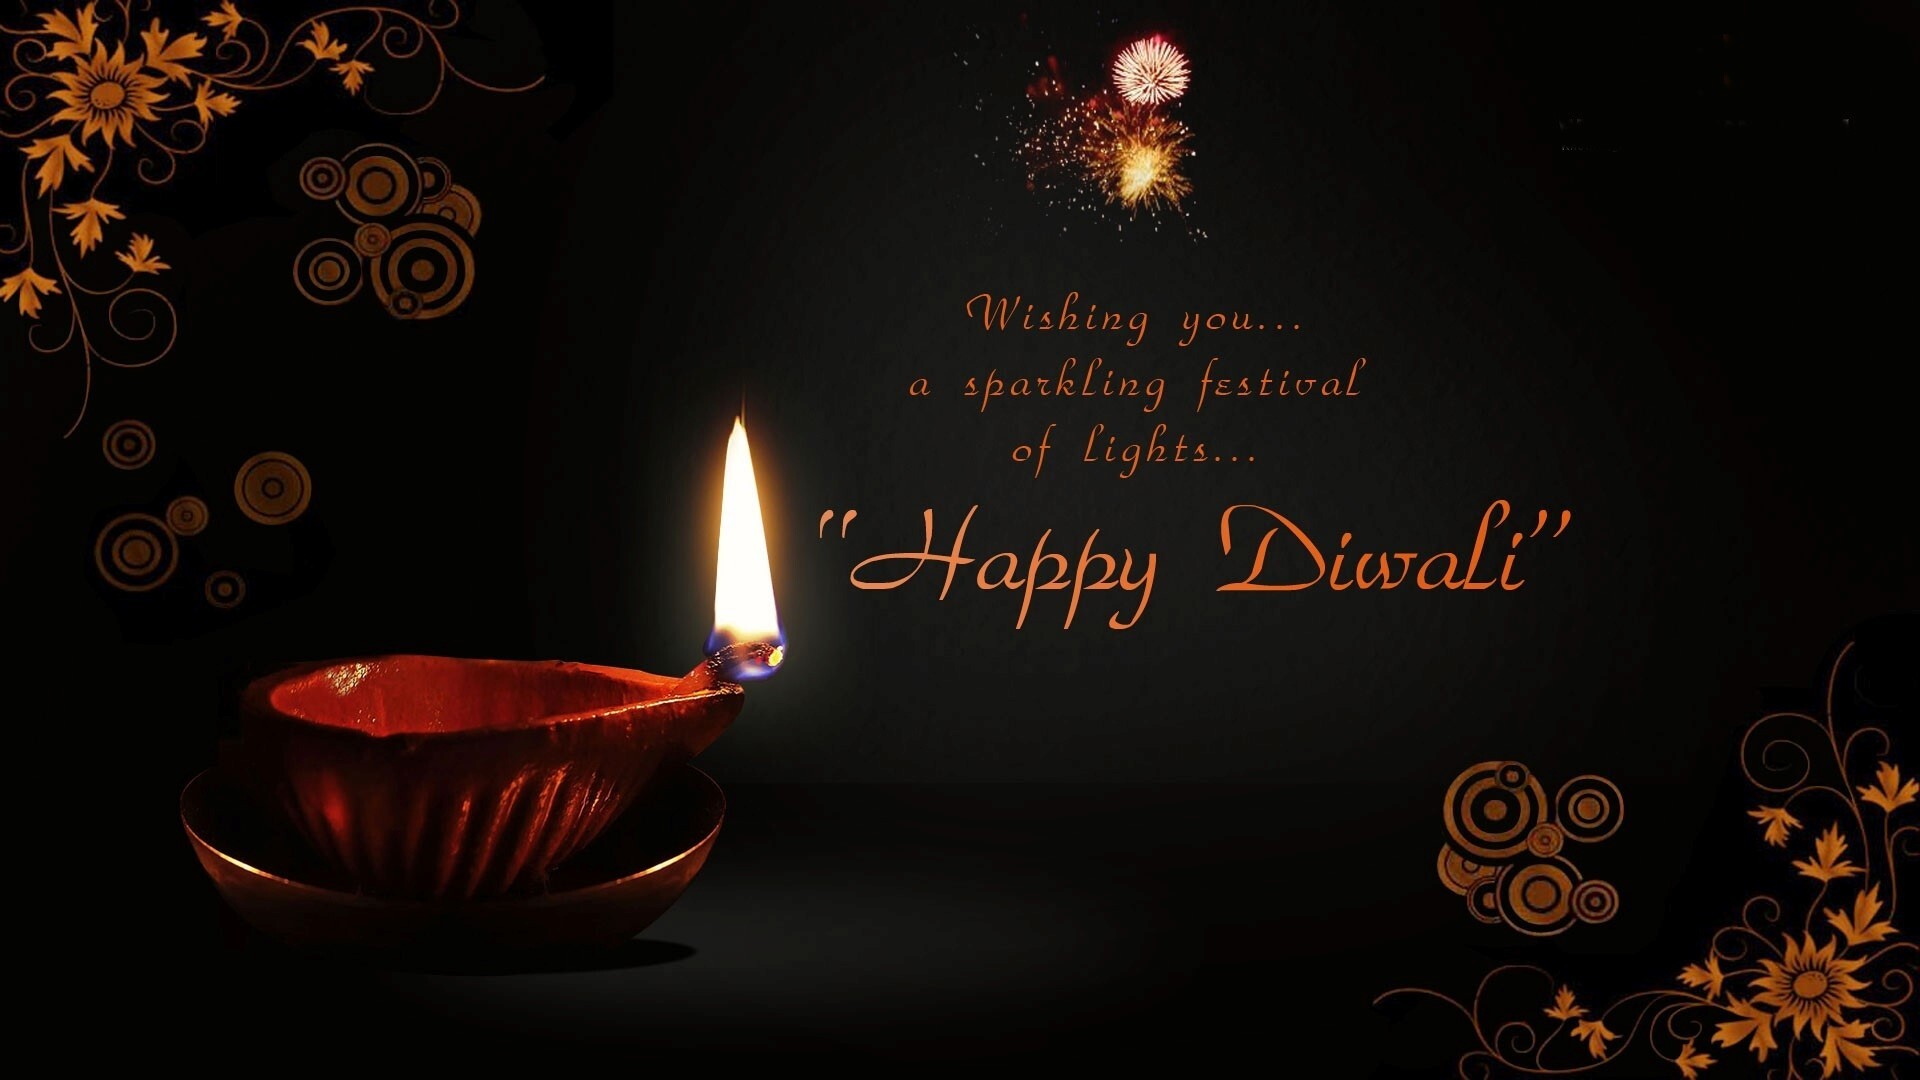 beautiful happy diwali wish hd desktop wallpapers download | hd